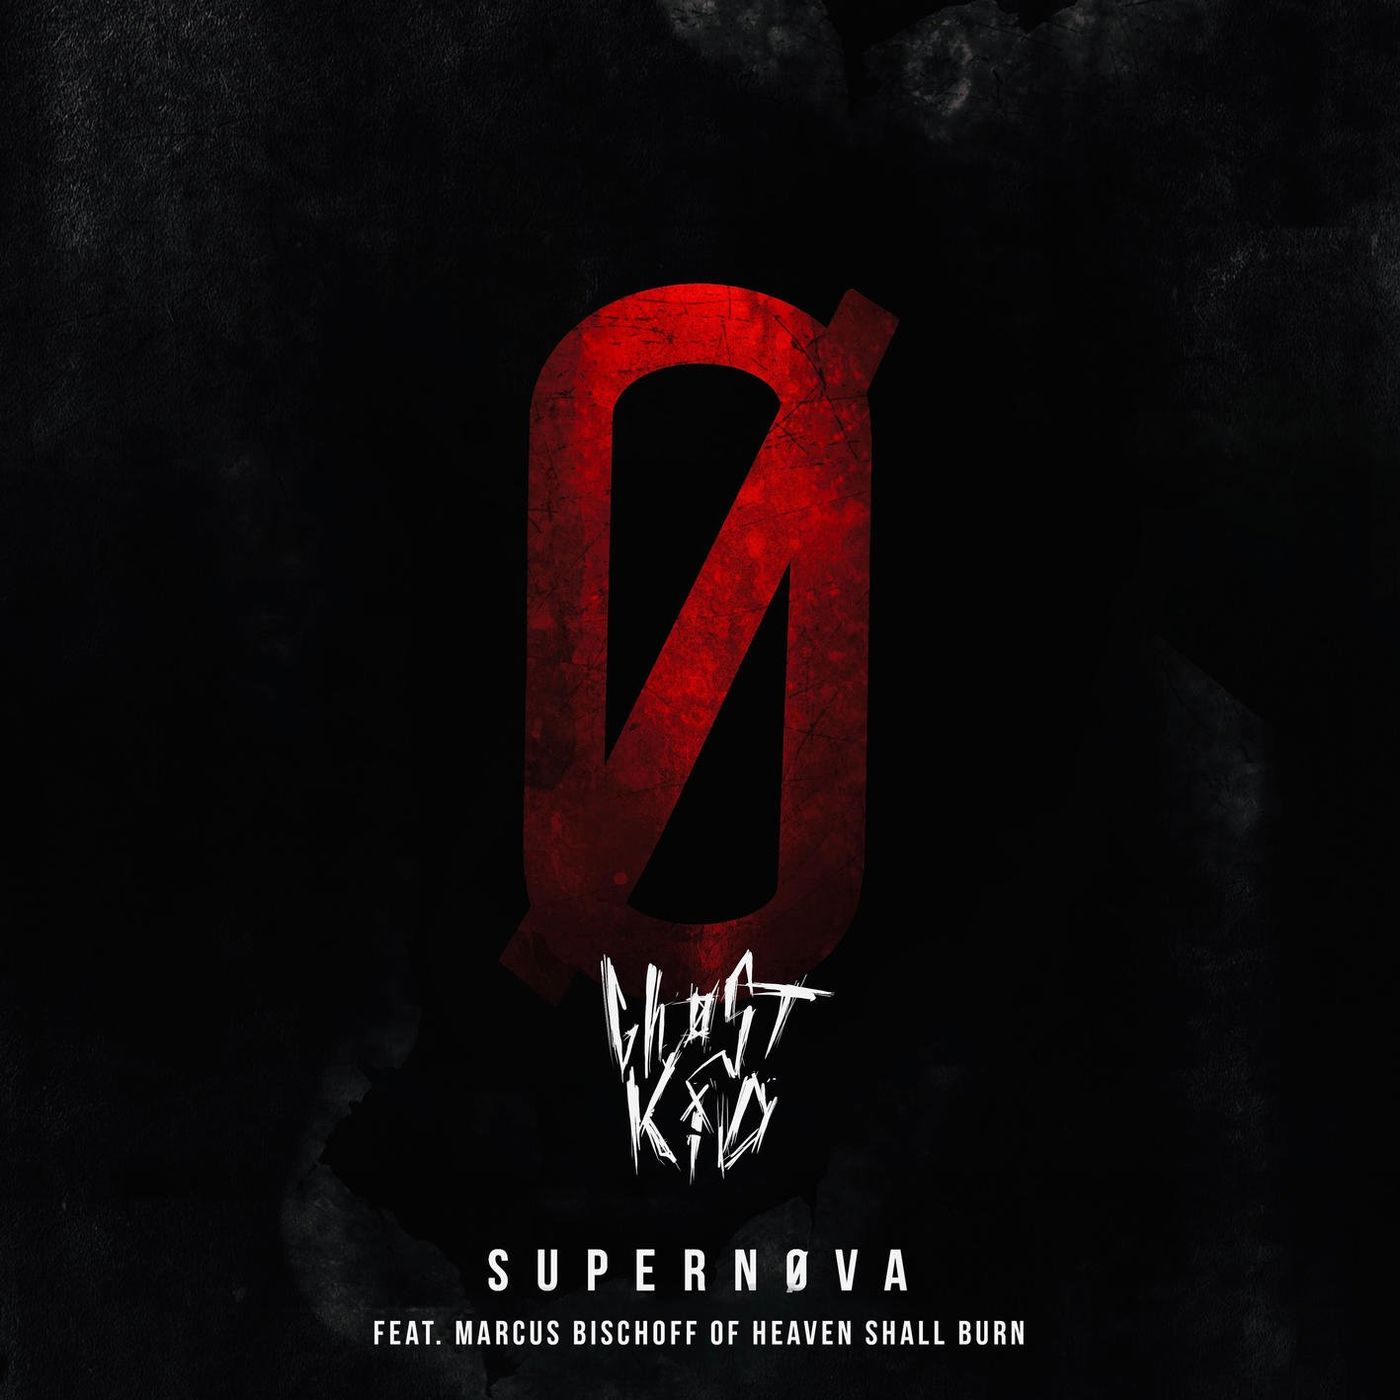 Ghøstkid - SUPERNØVA (feat. Marcus Bischoff) [single] (2020)